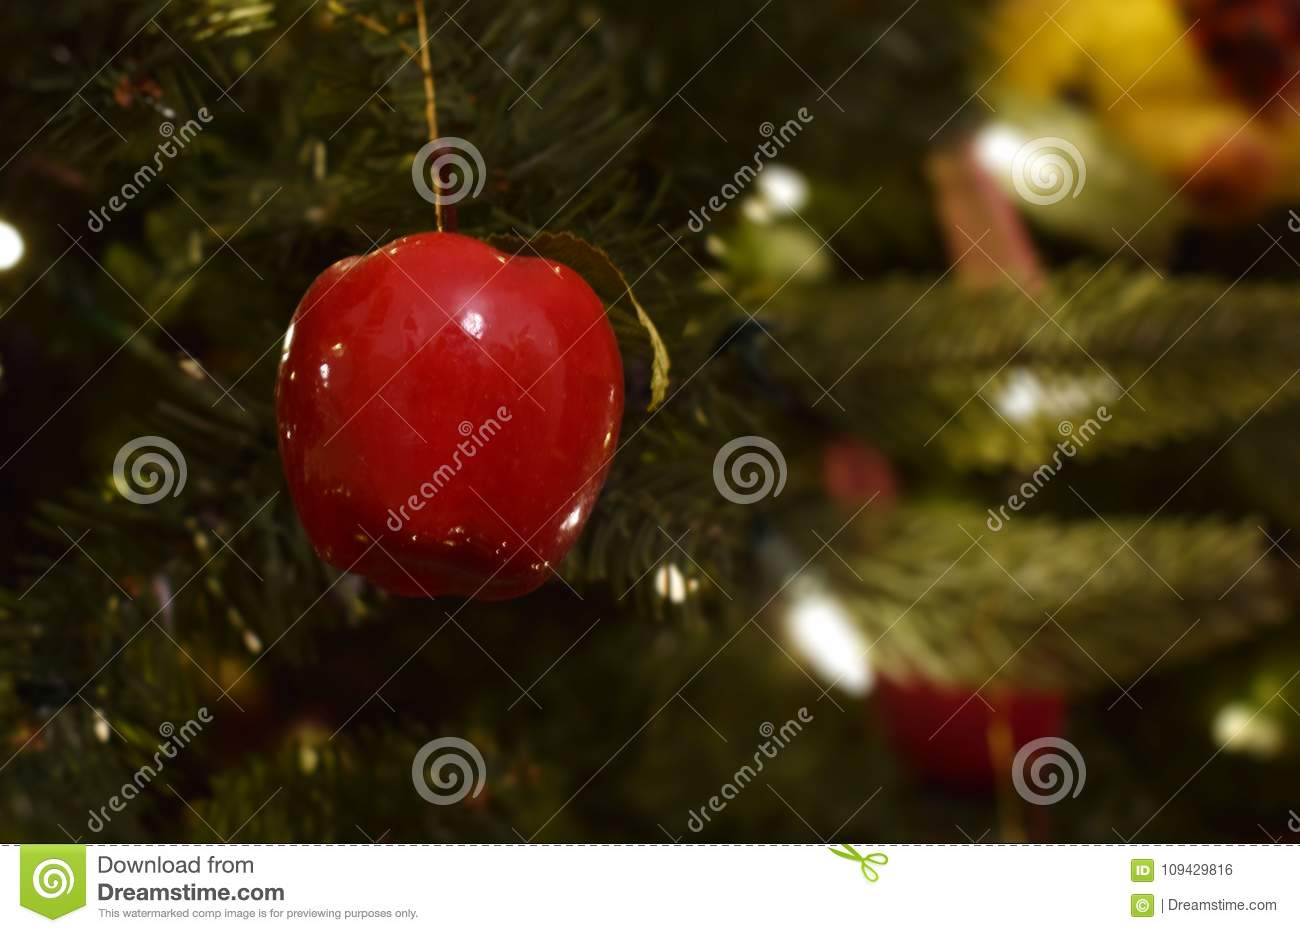 Red Christmas Apple In Christmas Tree With White Lights